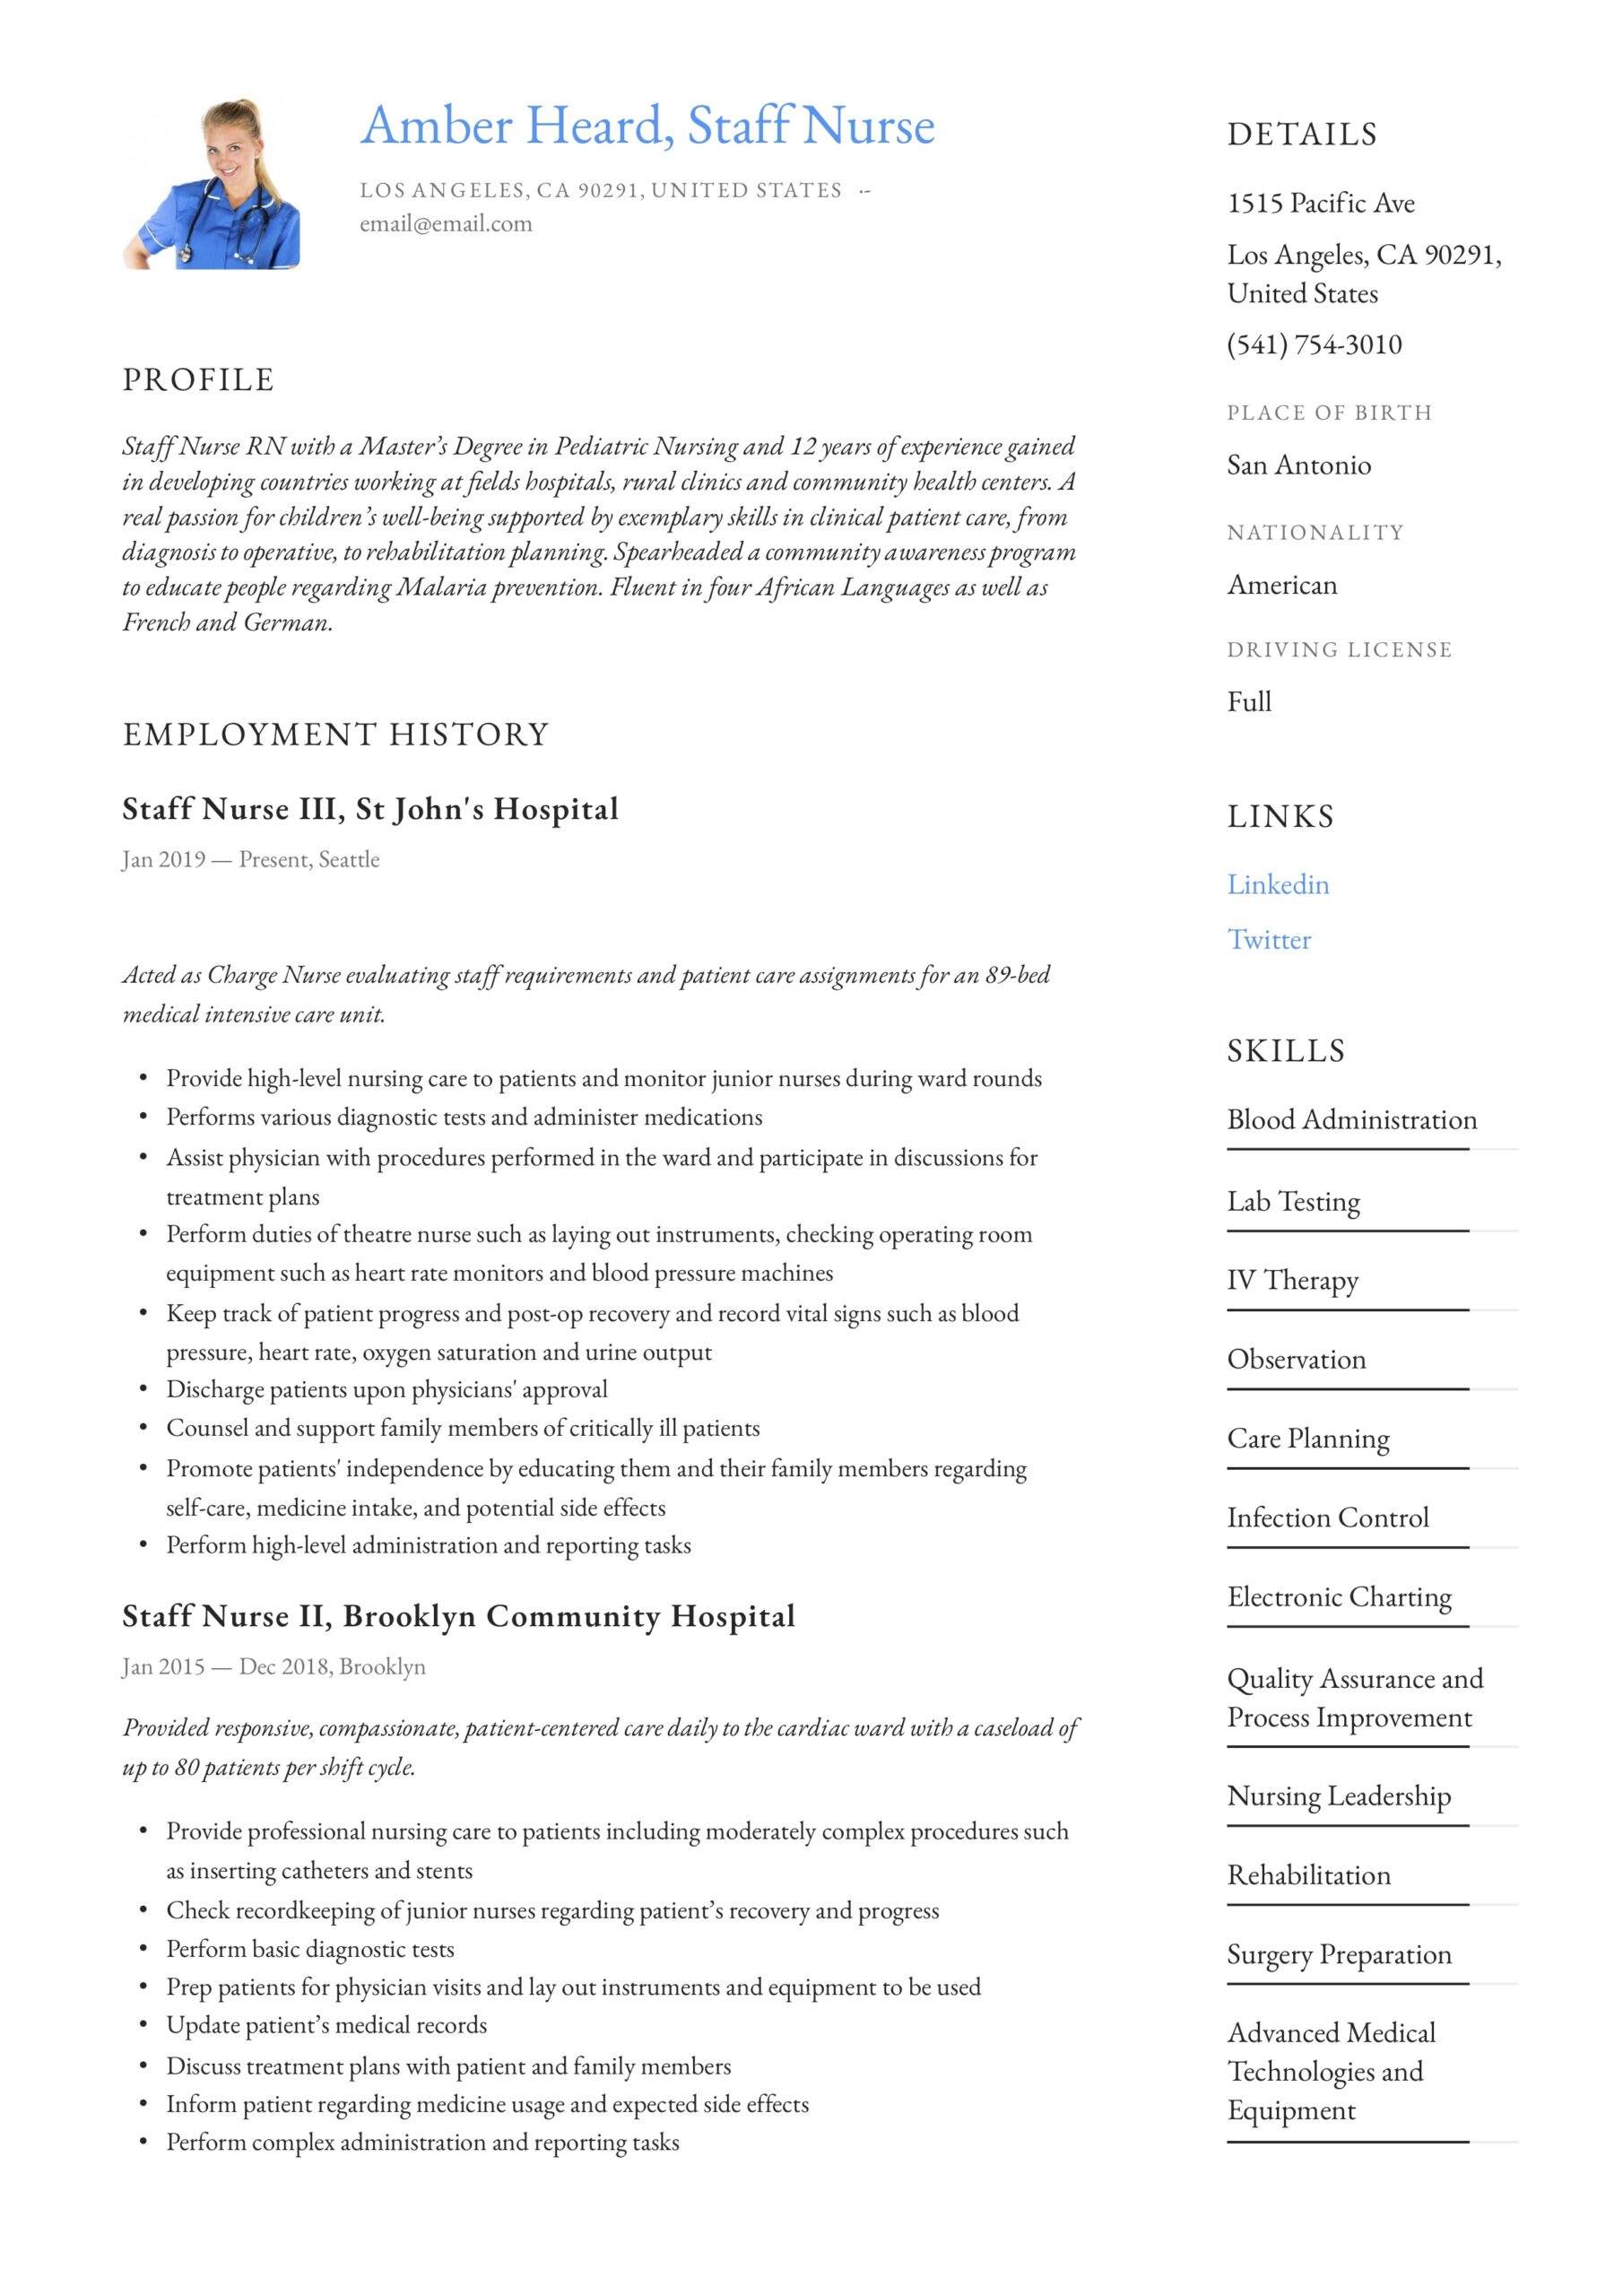 staff nurse resume writing guide templates in pdf nursing examples general manager format Resume Nursing Resume Examples 2020